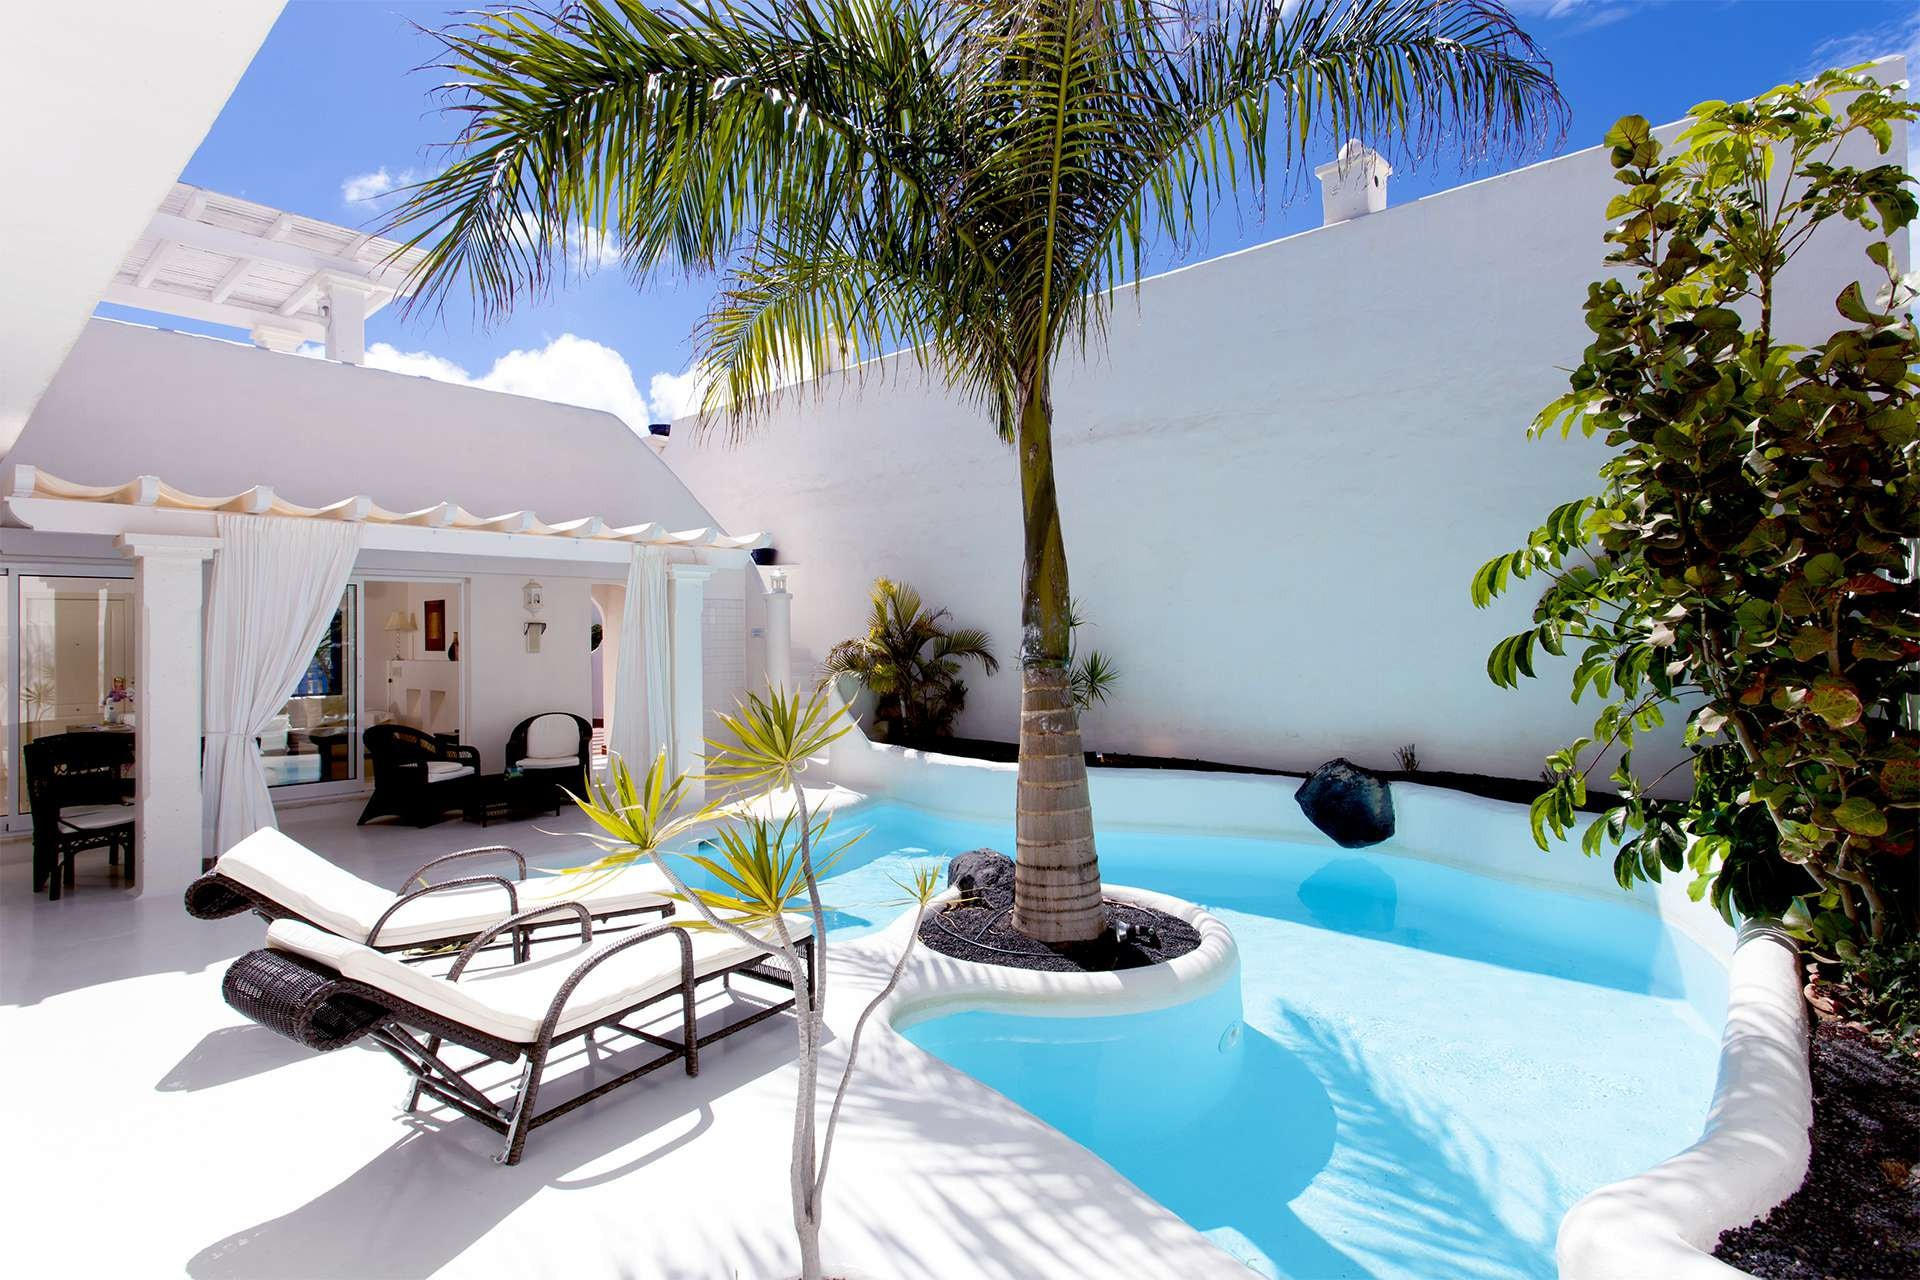 Premium villa | Courtesy of Bahiazul Villas & Club